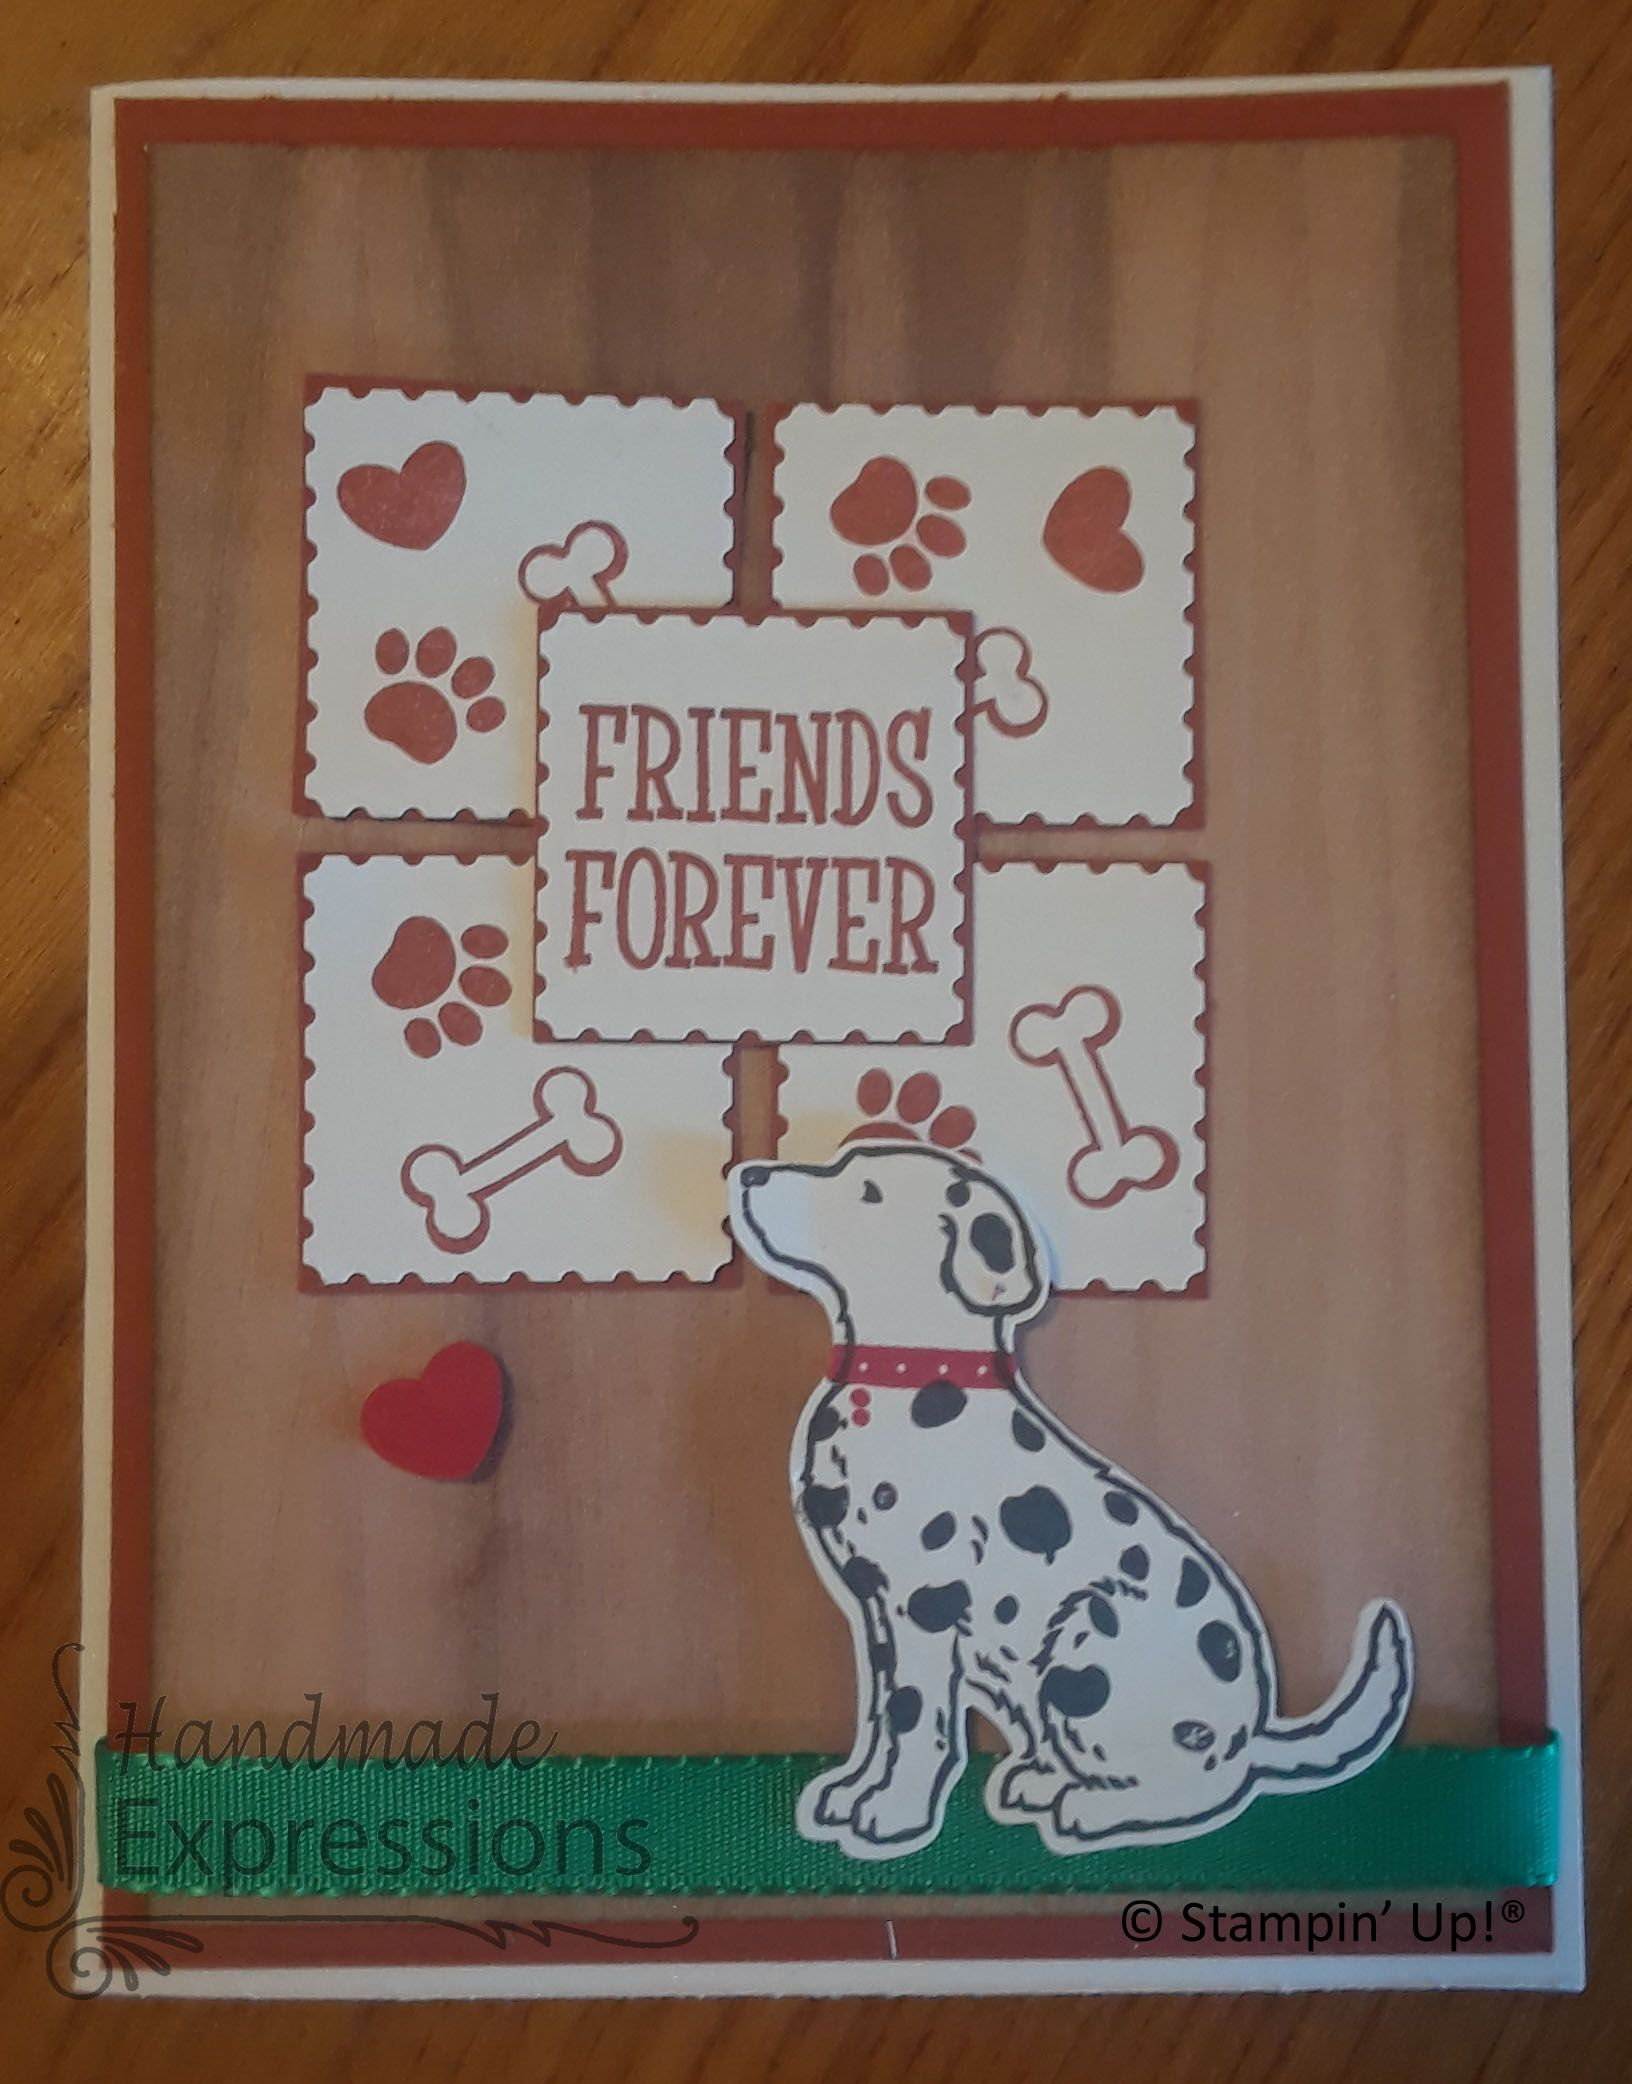 Forever friends happy tails stampin up cards